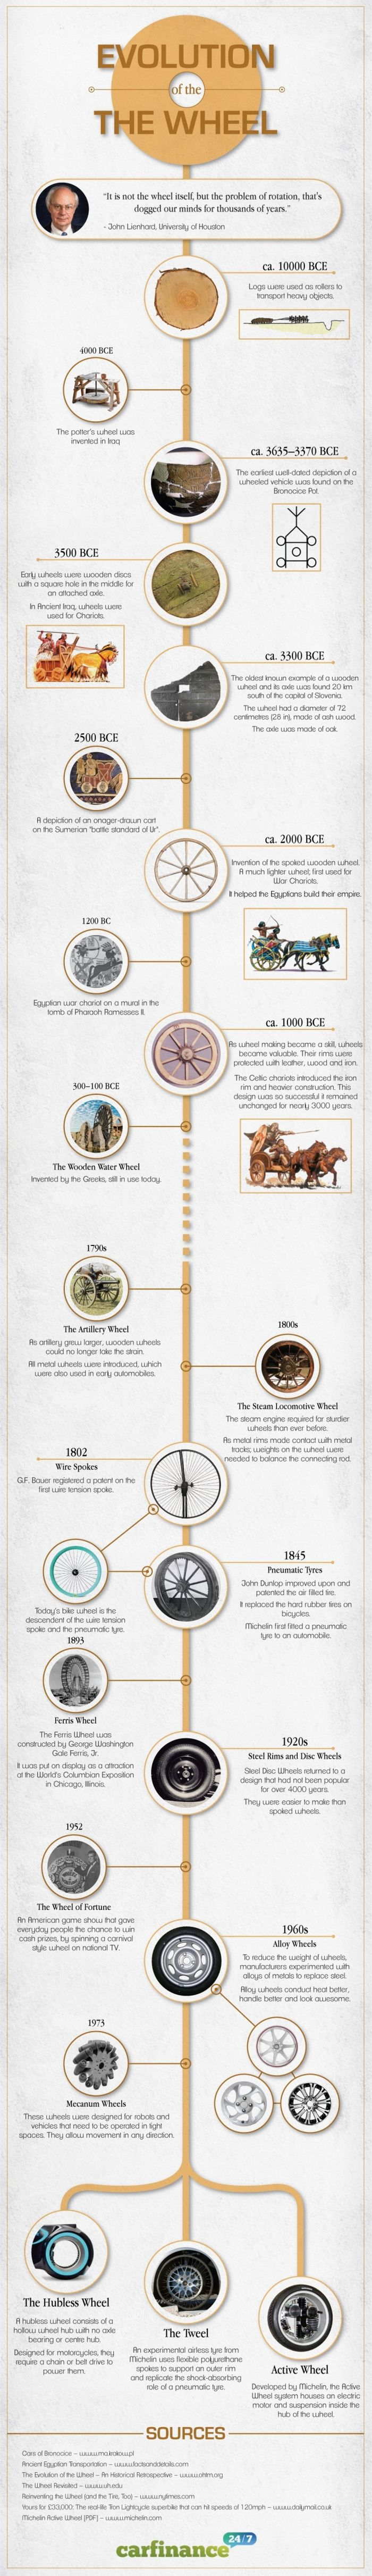 History of the Wheel (infographic)